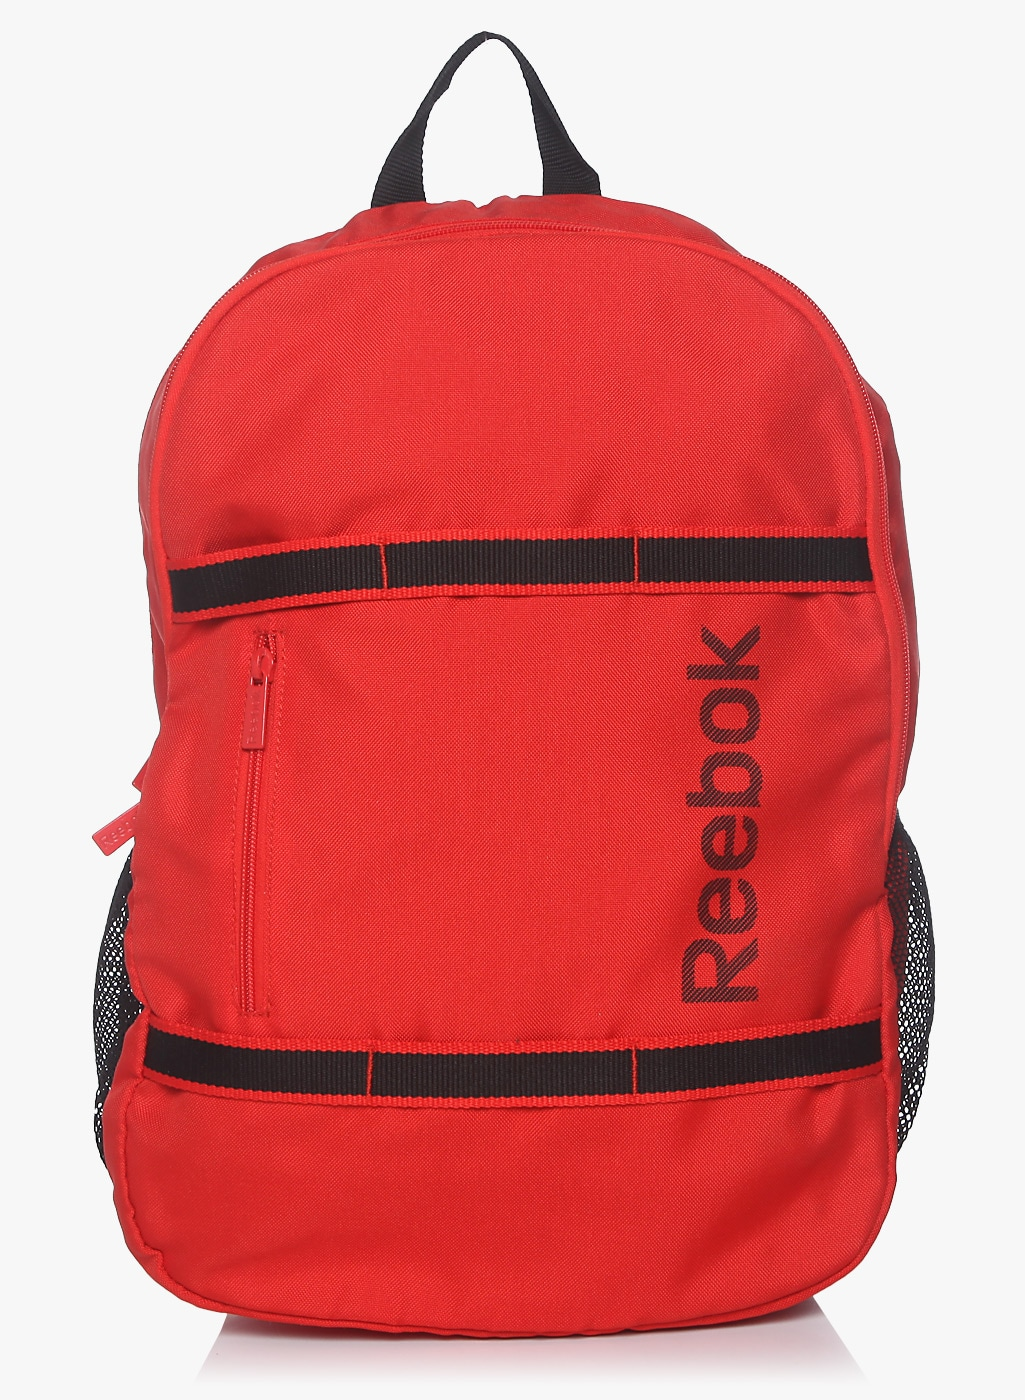 Reebok Backpacks - Buy Reebok Backpacks Online in India